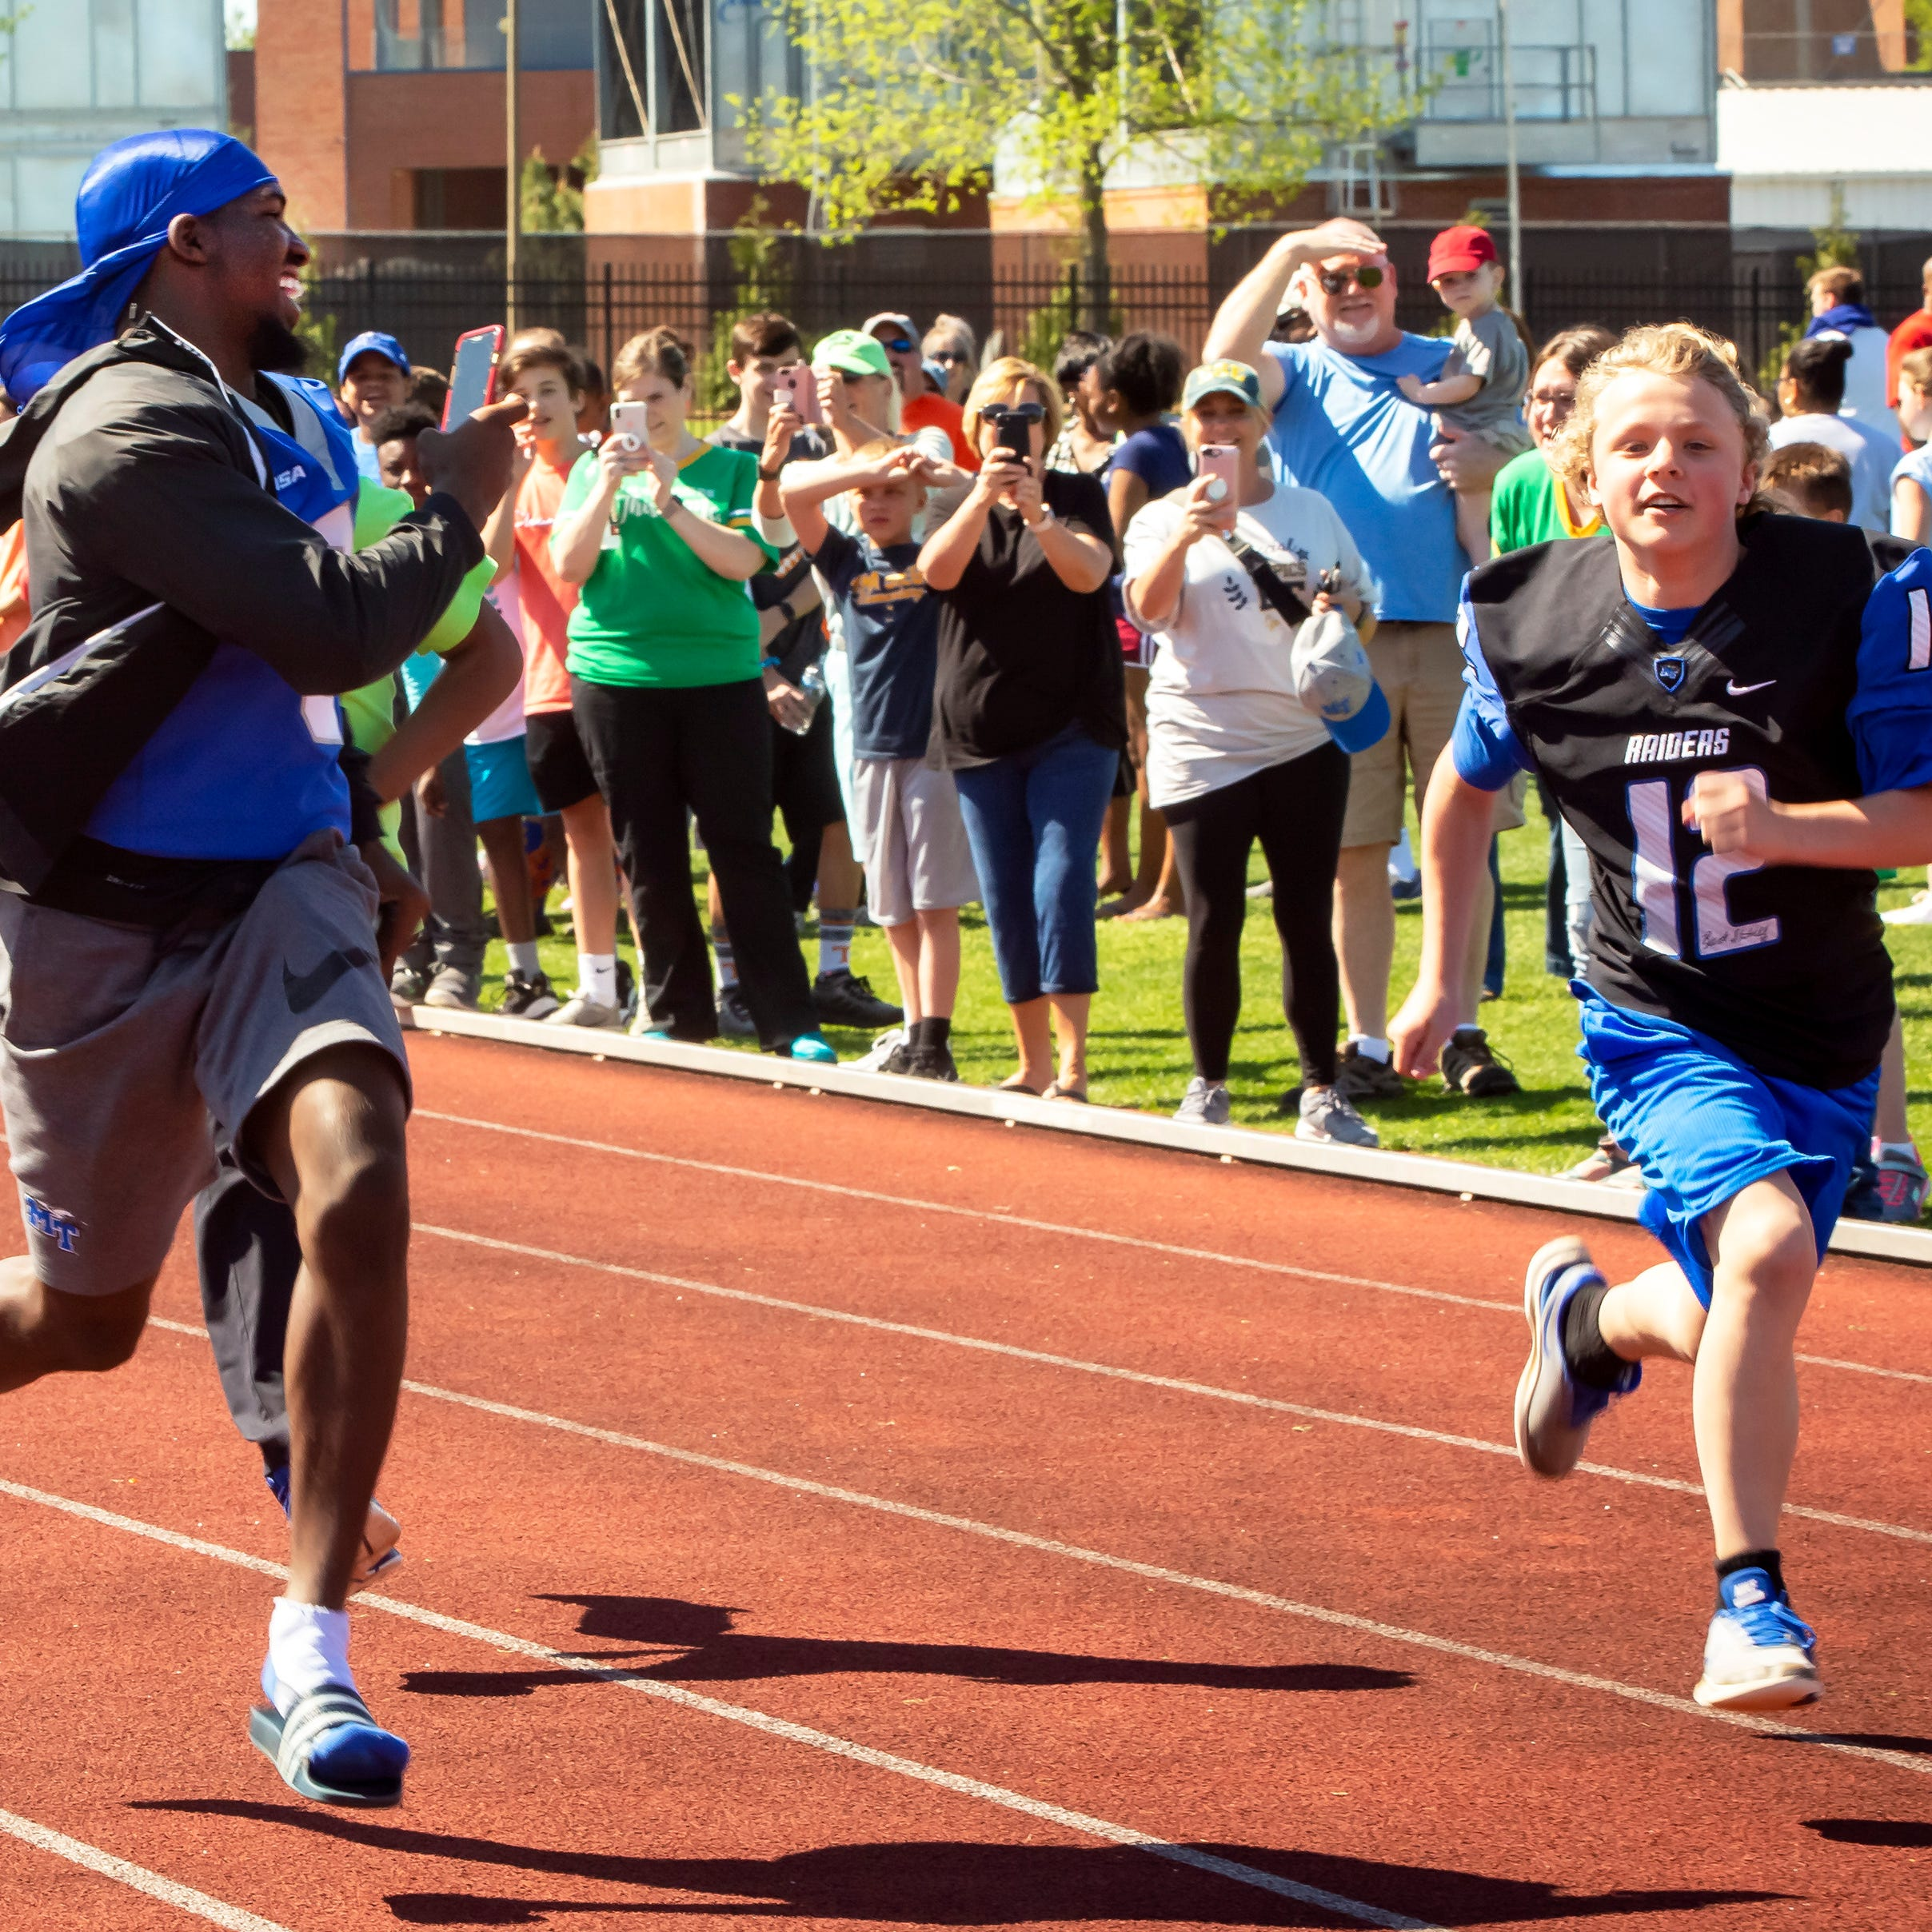 500 athletes from area schools compete in largest Special Olympics in Tennessee